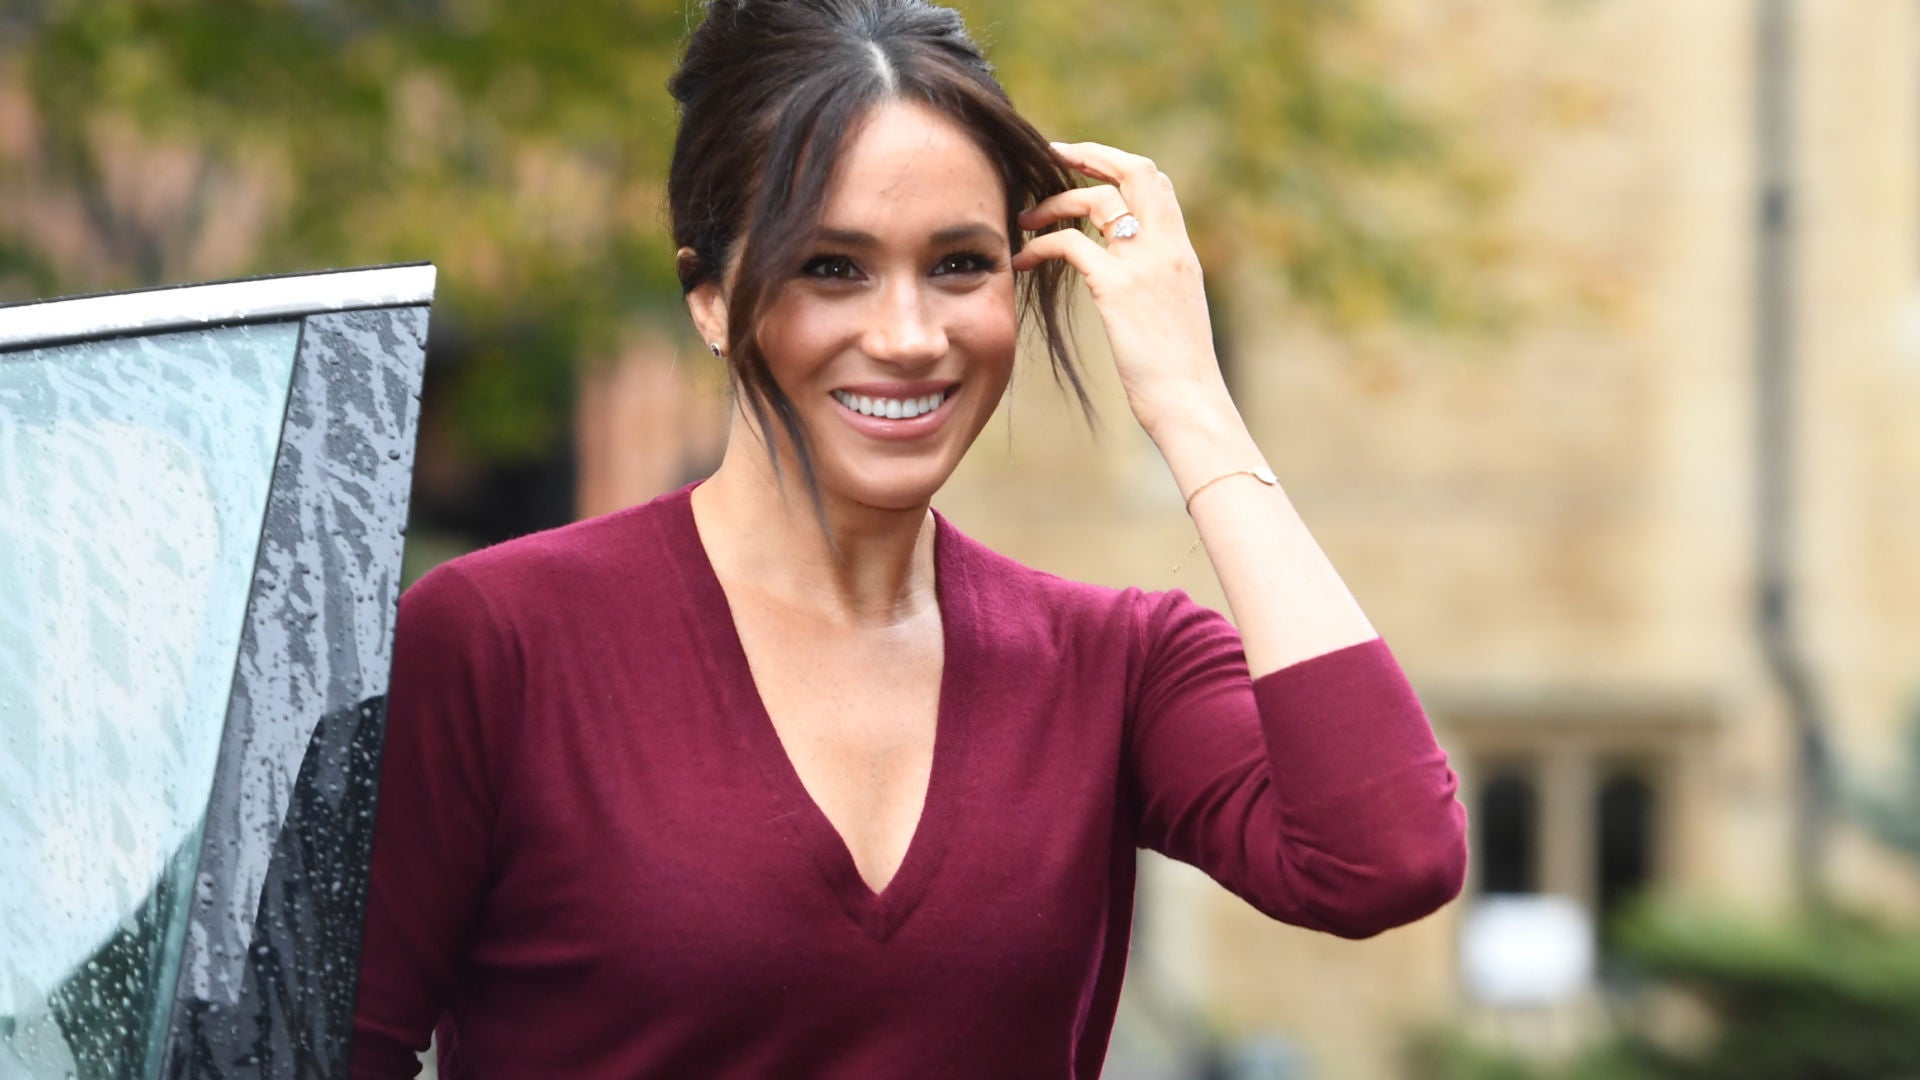 Trump Says He Can 'Understand' Why Meghan Markle Takes The Press 'Personally'